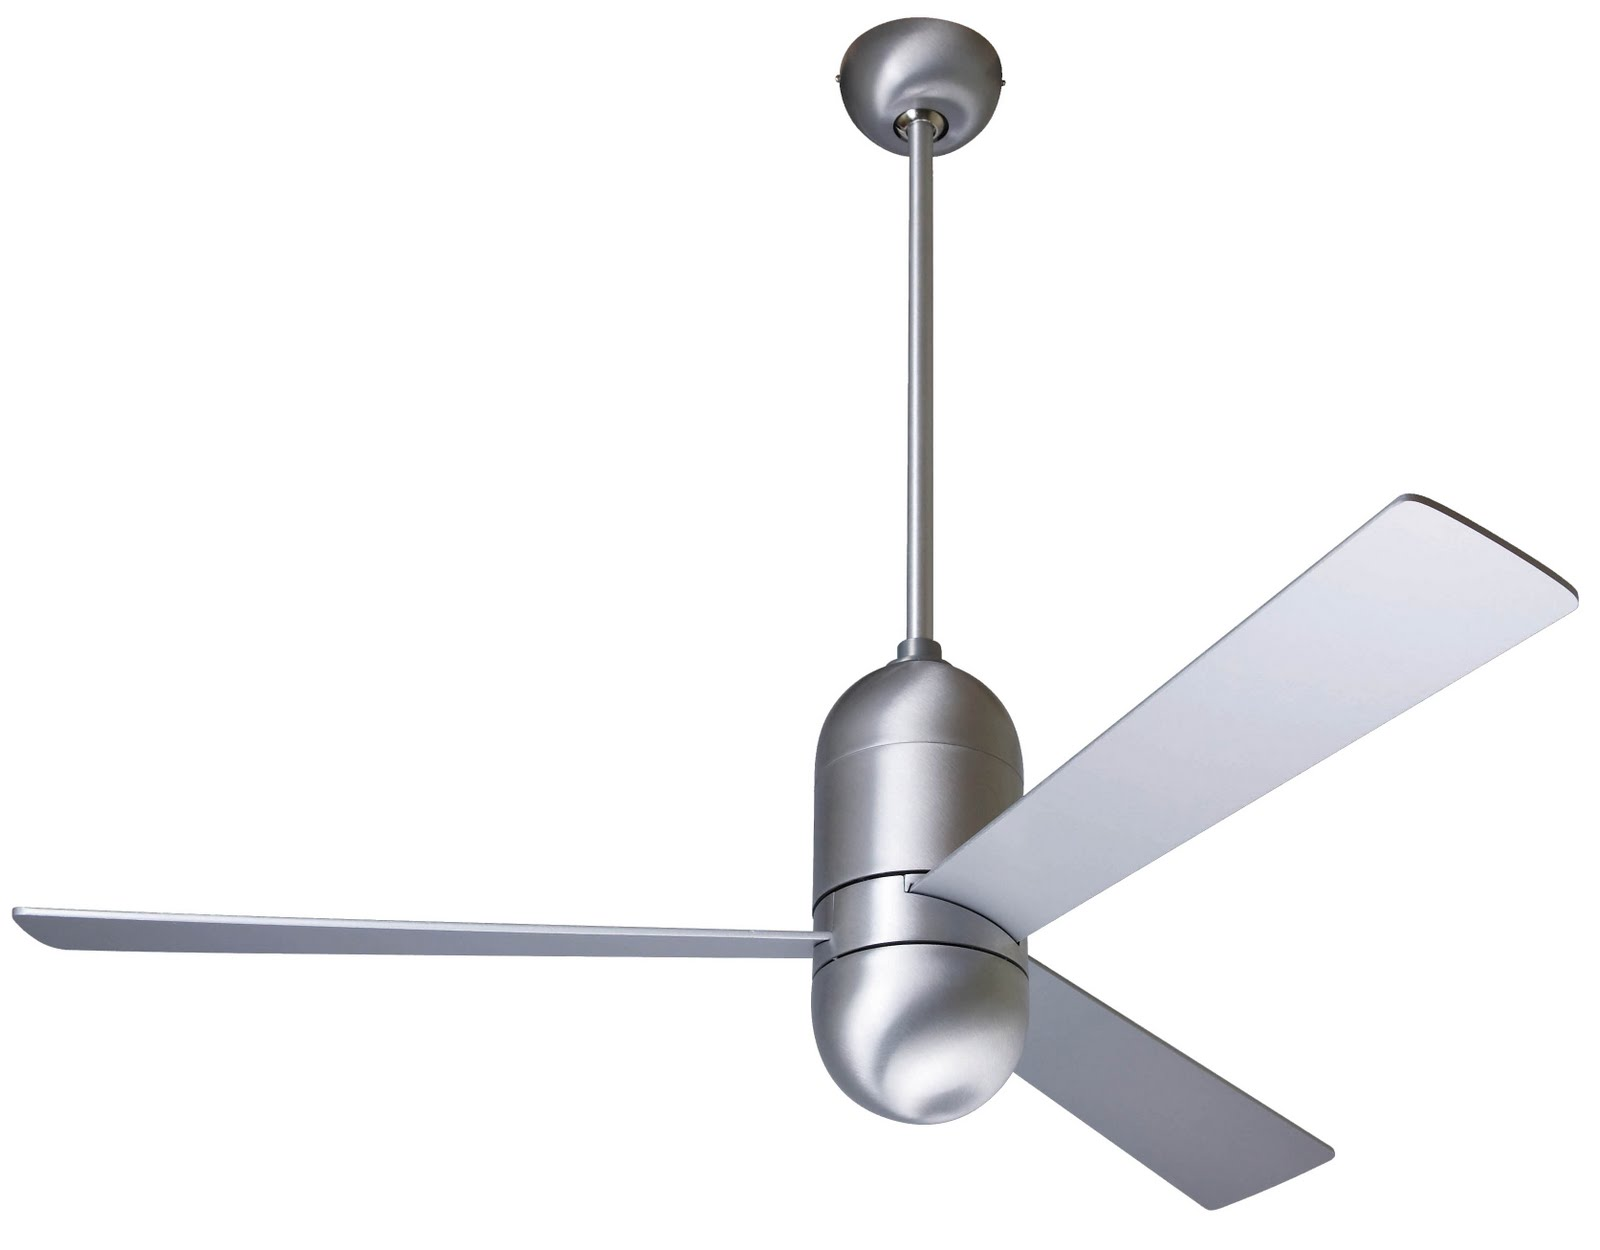 Ceiling fans modern design by moderndesign ceiling fans aloadofball Image collections